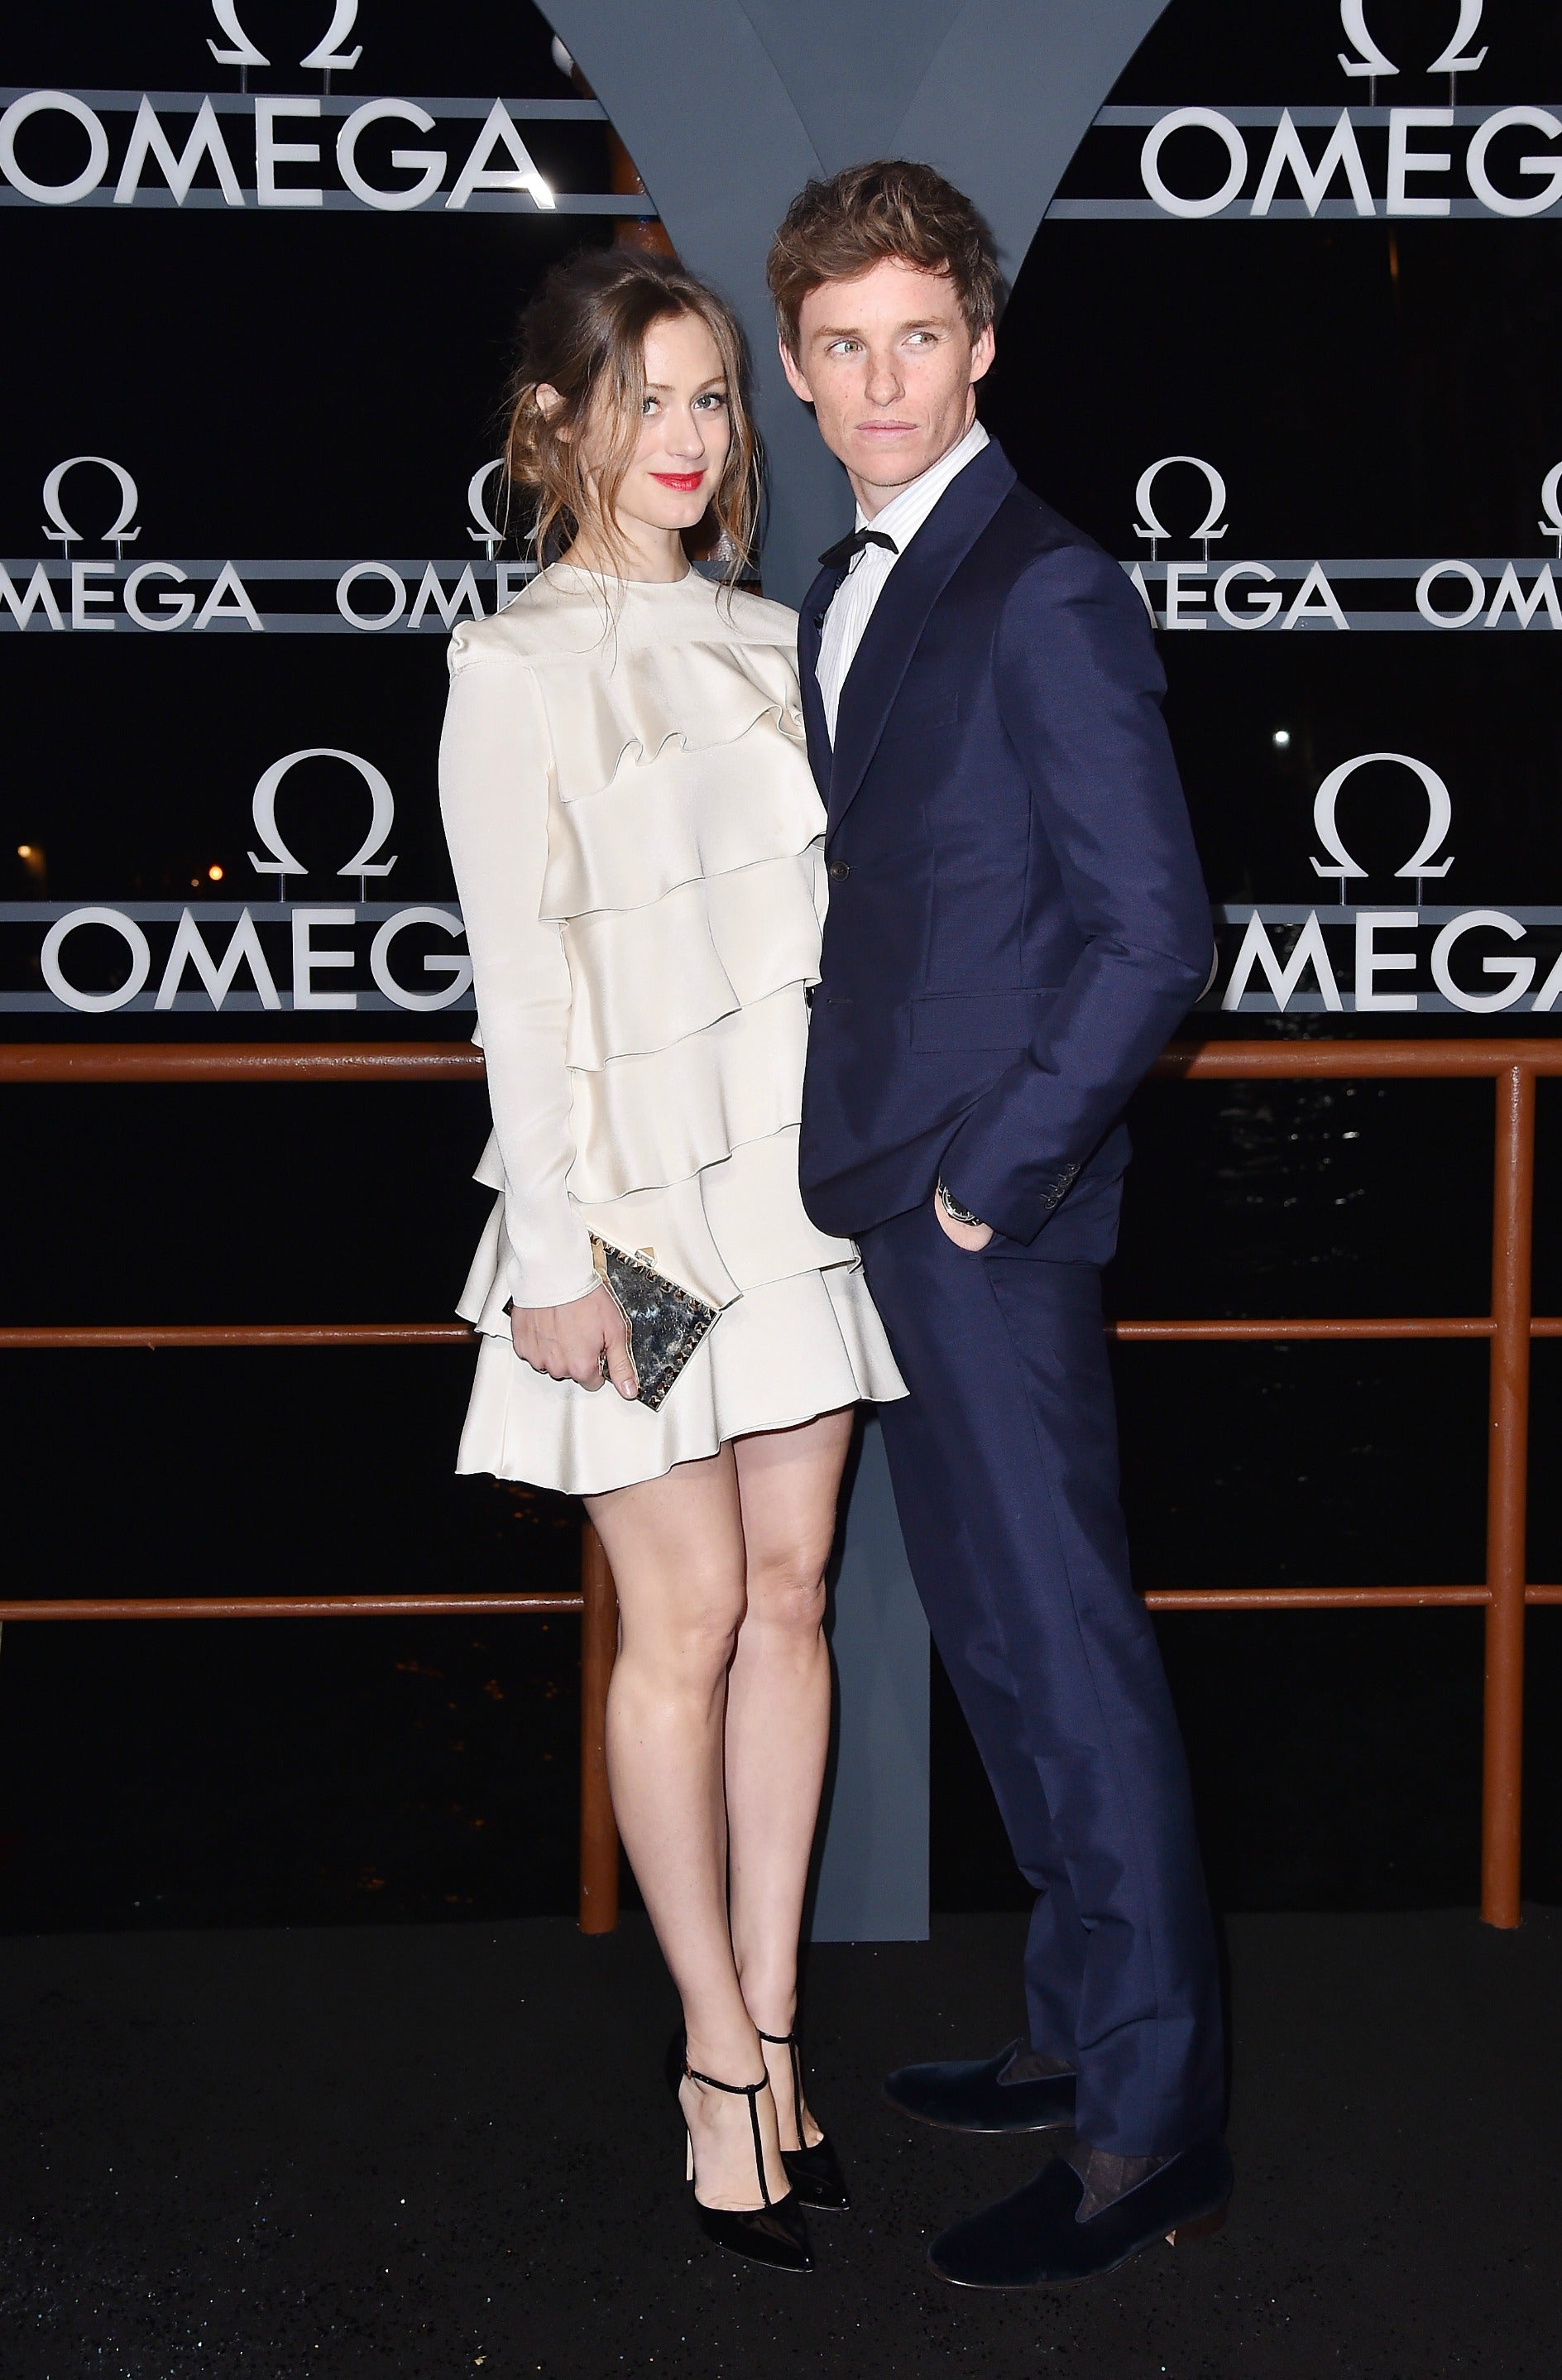 Eddie Redmayne and Hannah Bagshawe at Omega party